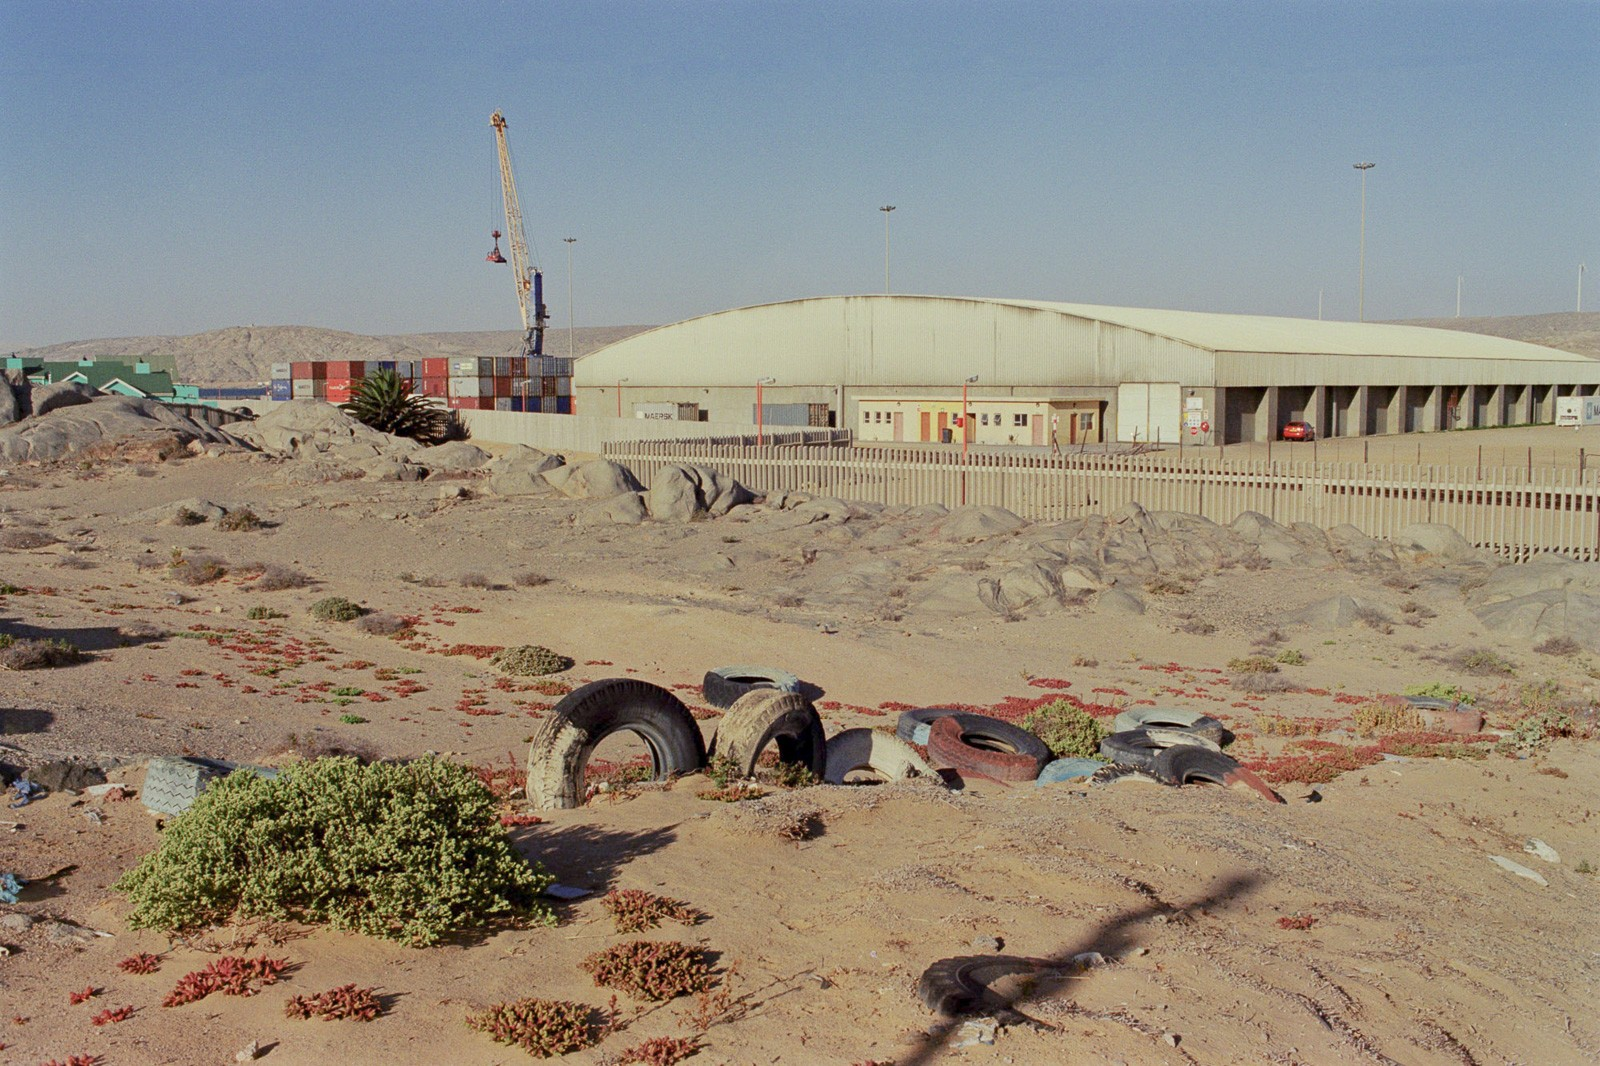 wasteland scene in lüderitz namibia of old tyres in front of industry